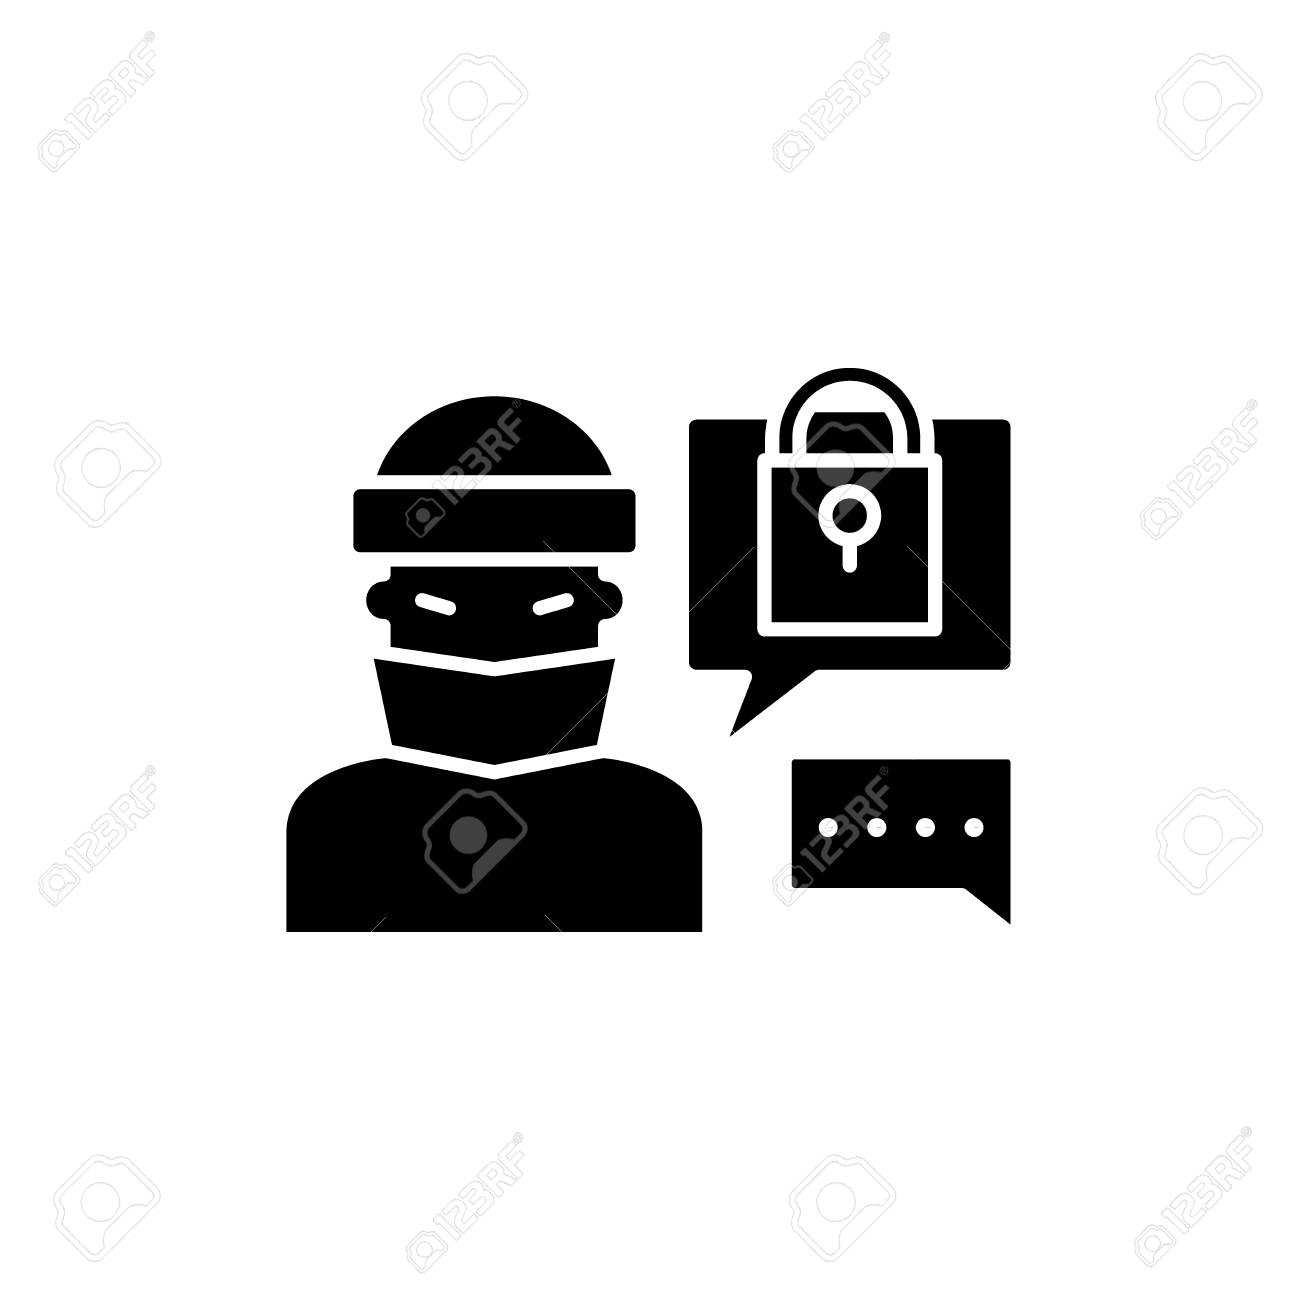 Hacking Access System Black Icon Concept Vector Sign On Isolated Royalty Free Cliparts Vectors And Stock Illustration Image 127290328